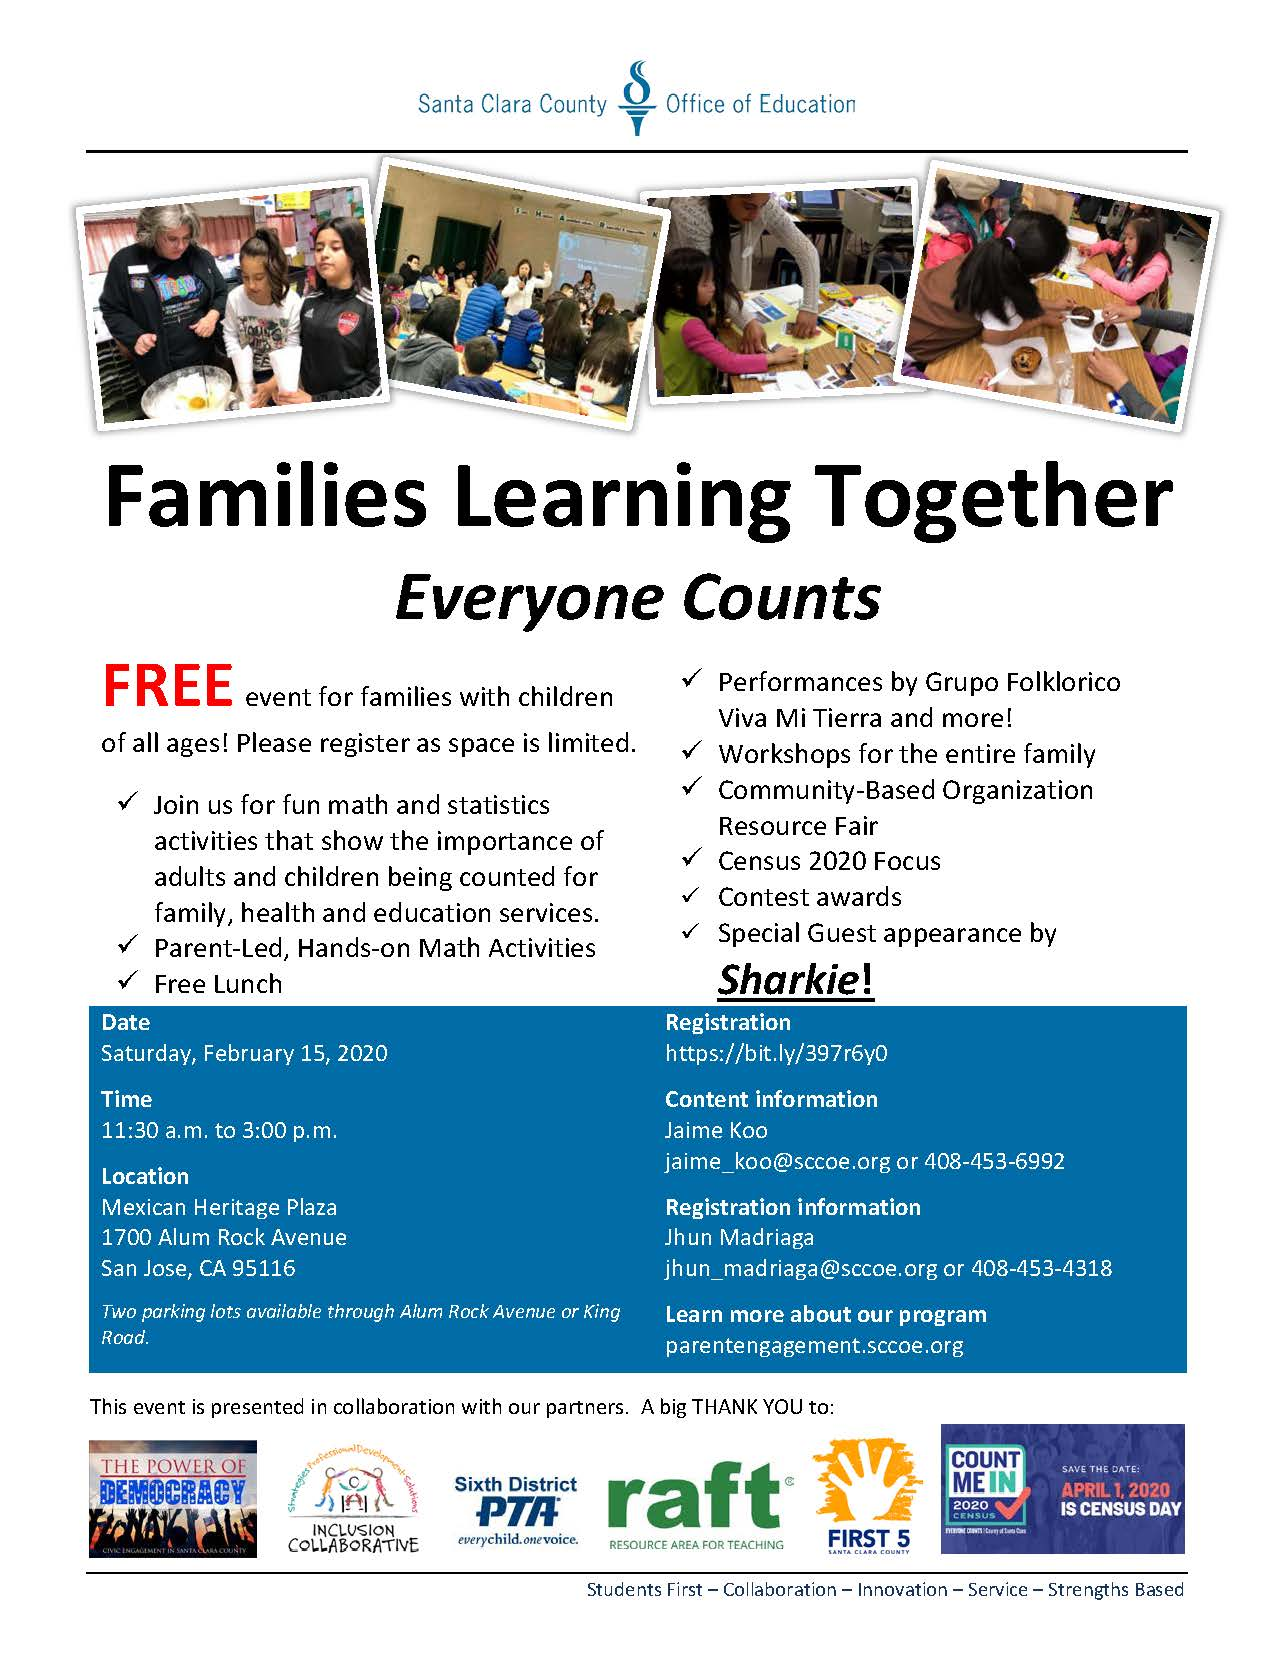 Families Learning Together 2020.jpg